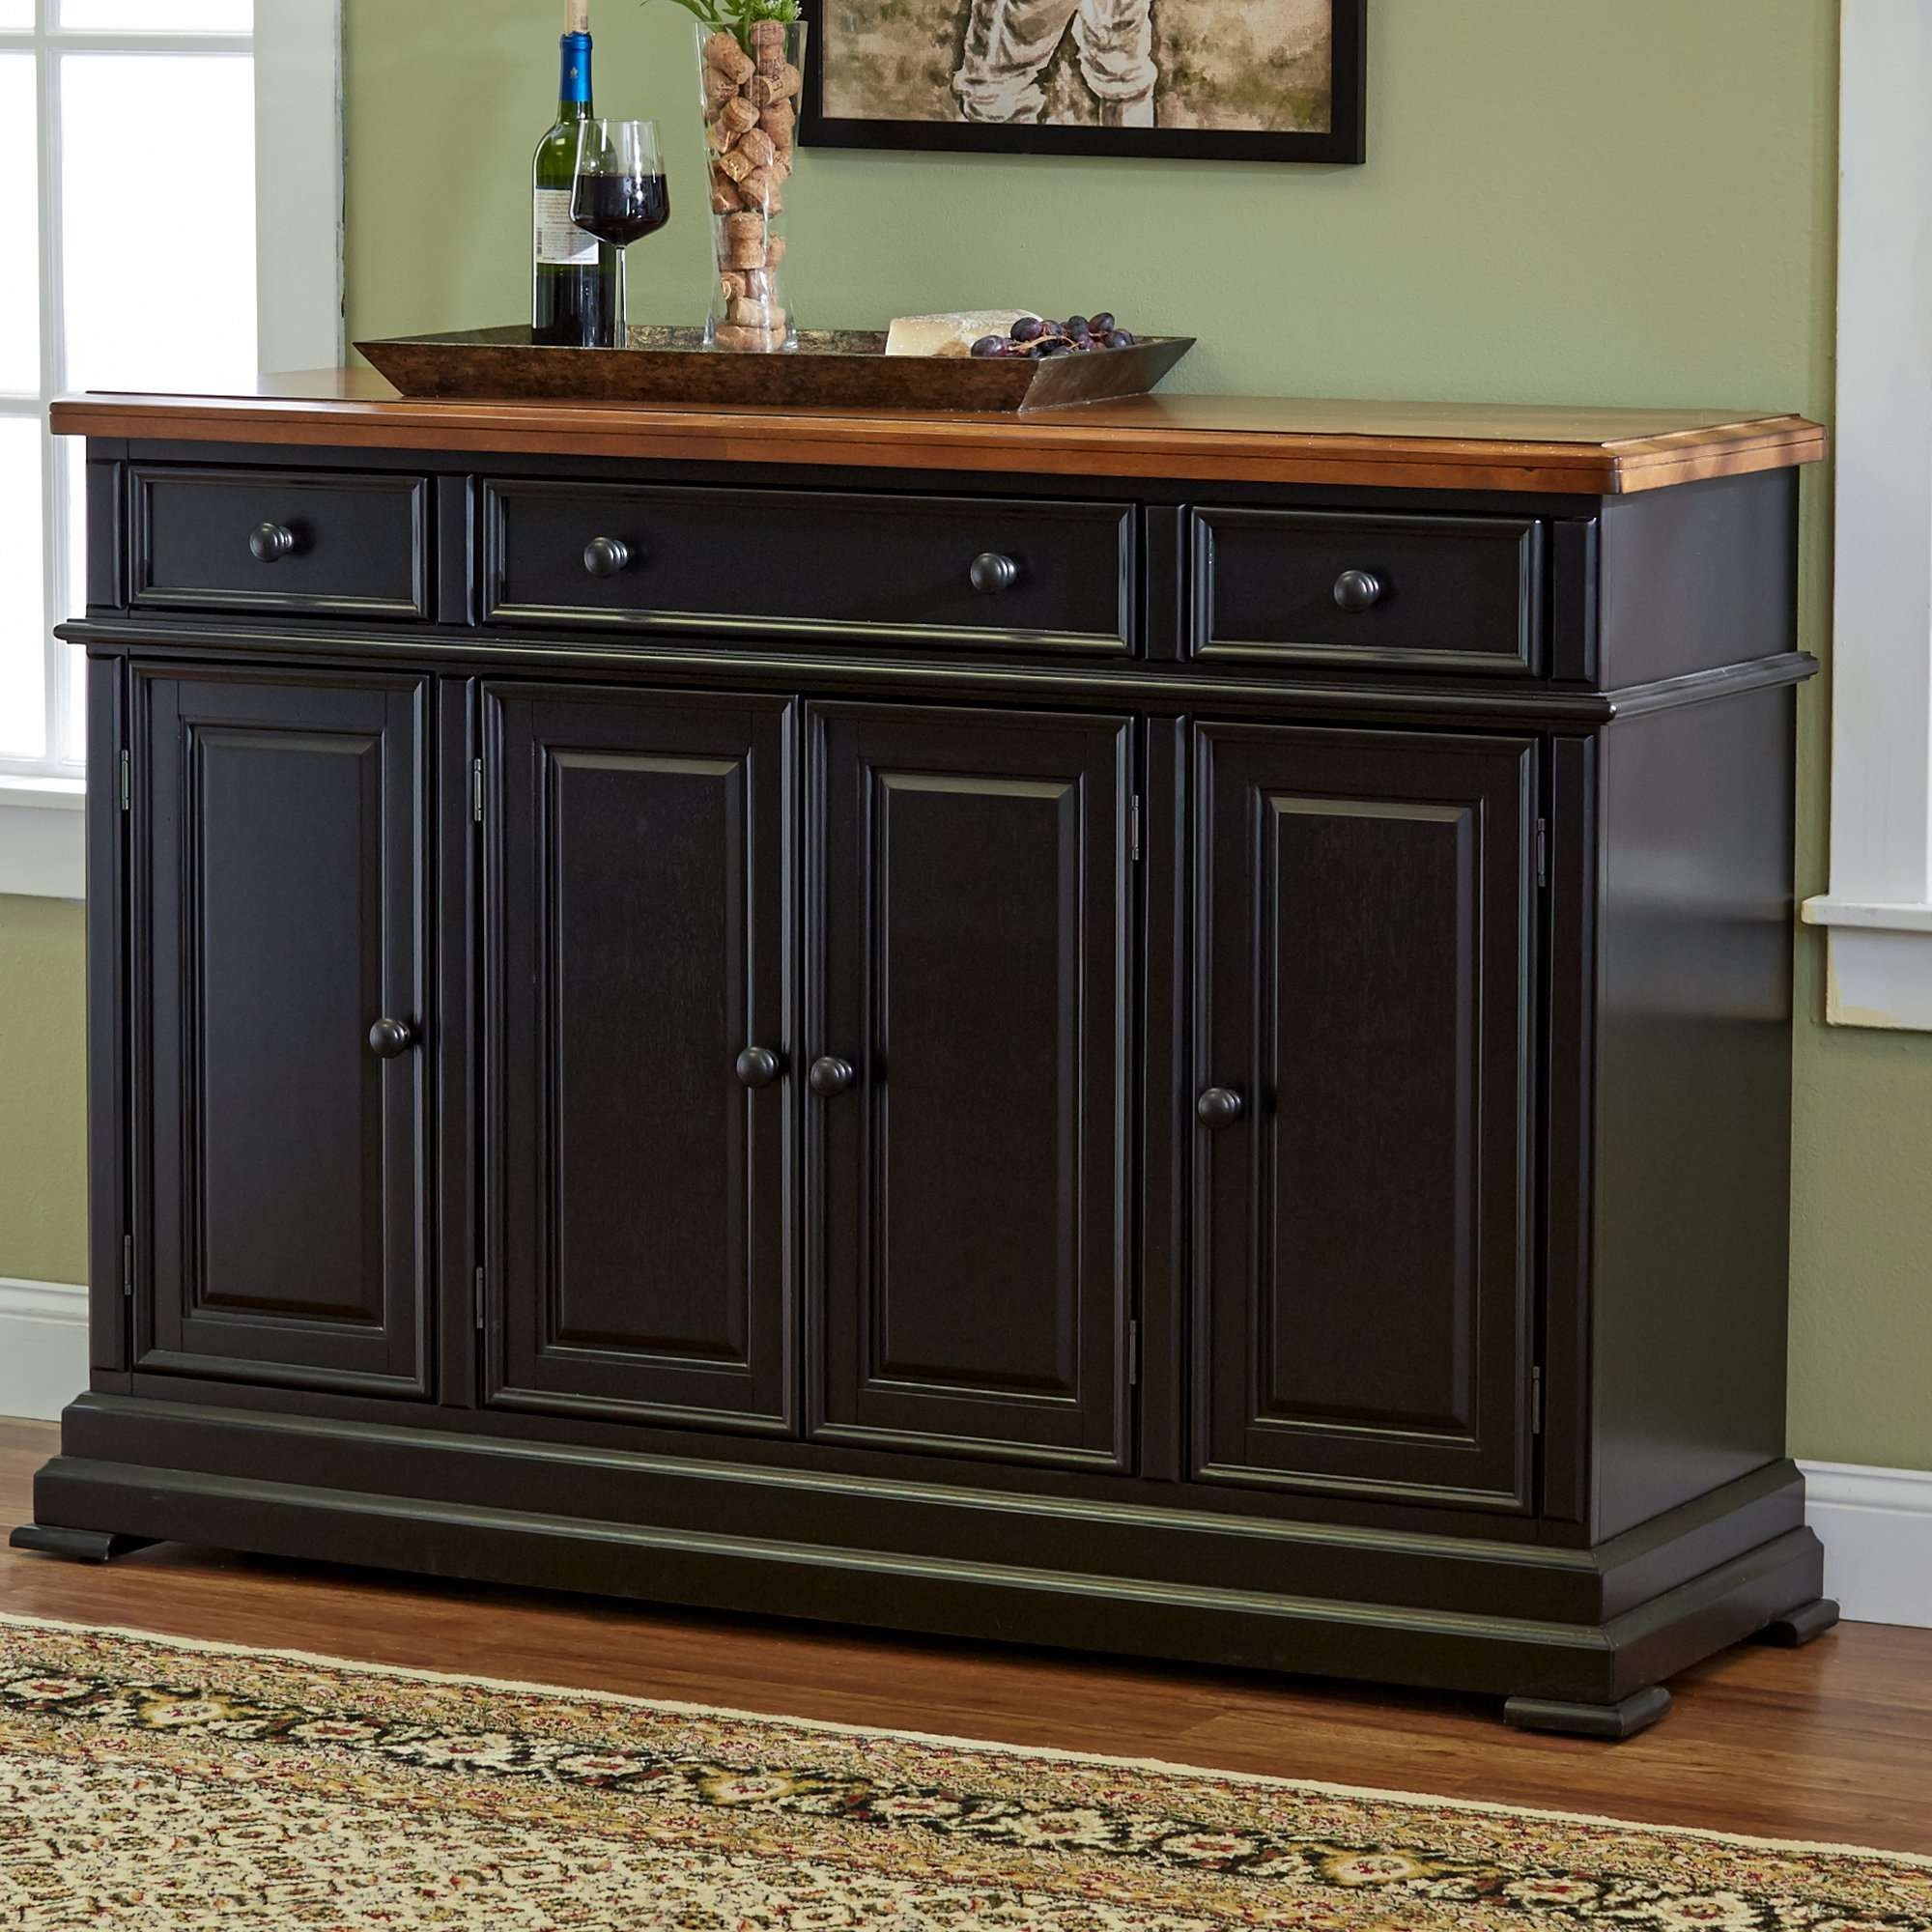 Elegant Sideboard With Hutch – Bjdgjy Throughout Elegant Sideboards (Gallery 12 of 20)